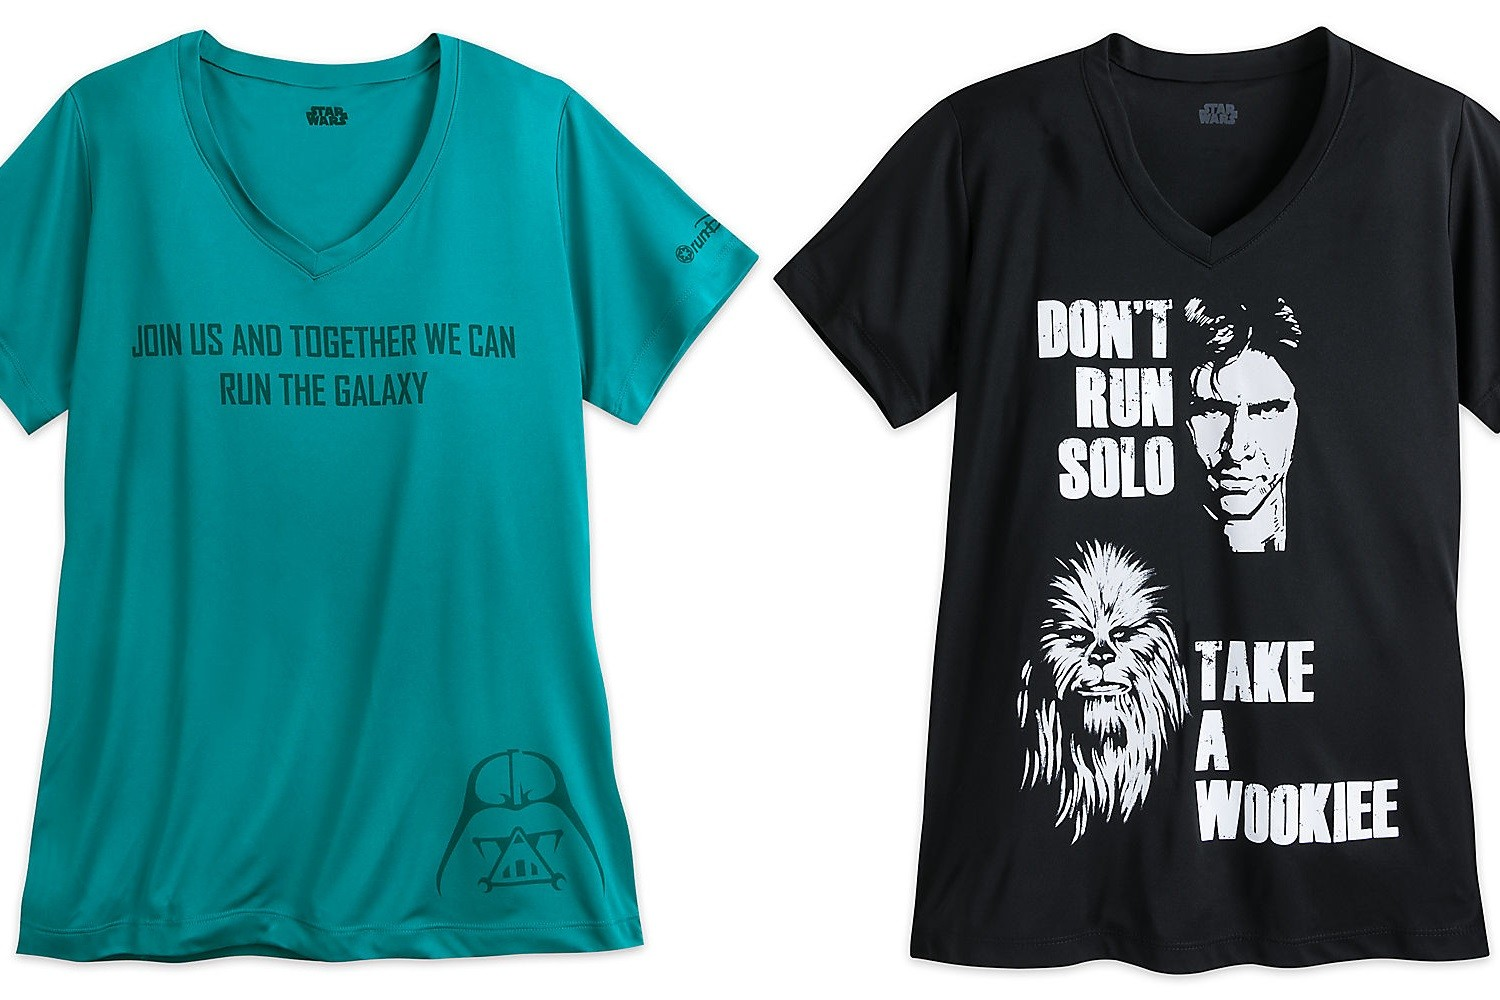 New women's Run Disney Star Wars t-shirts